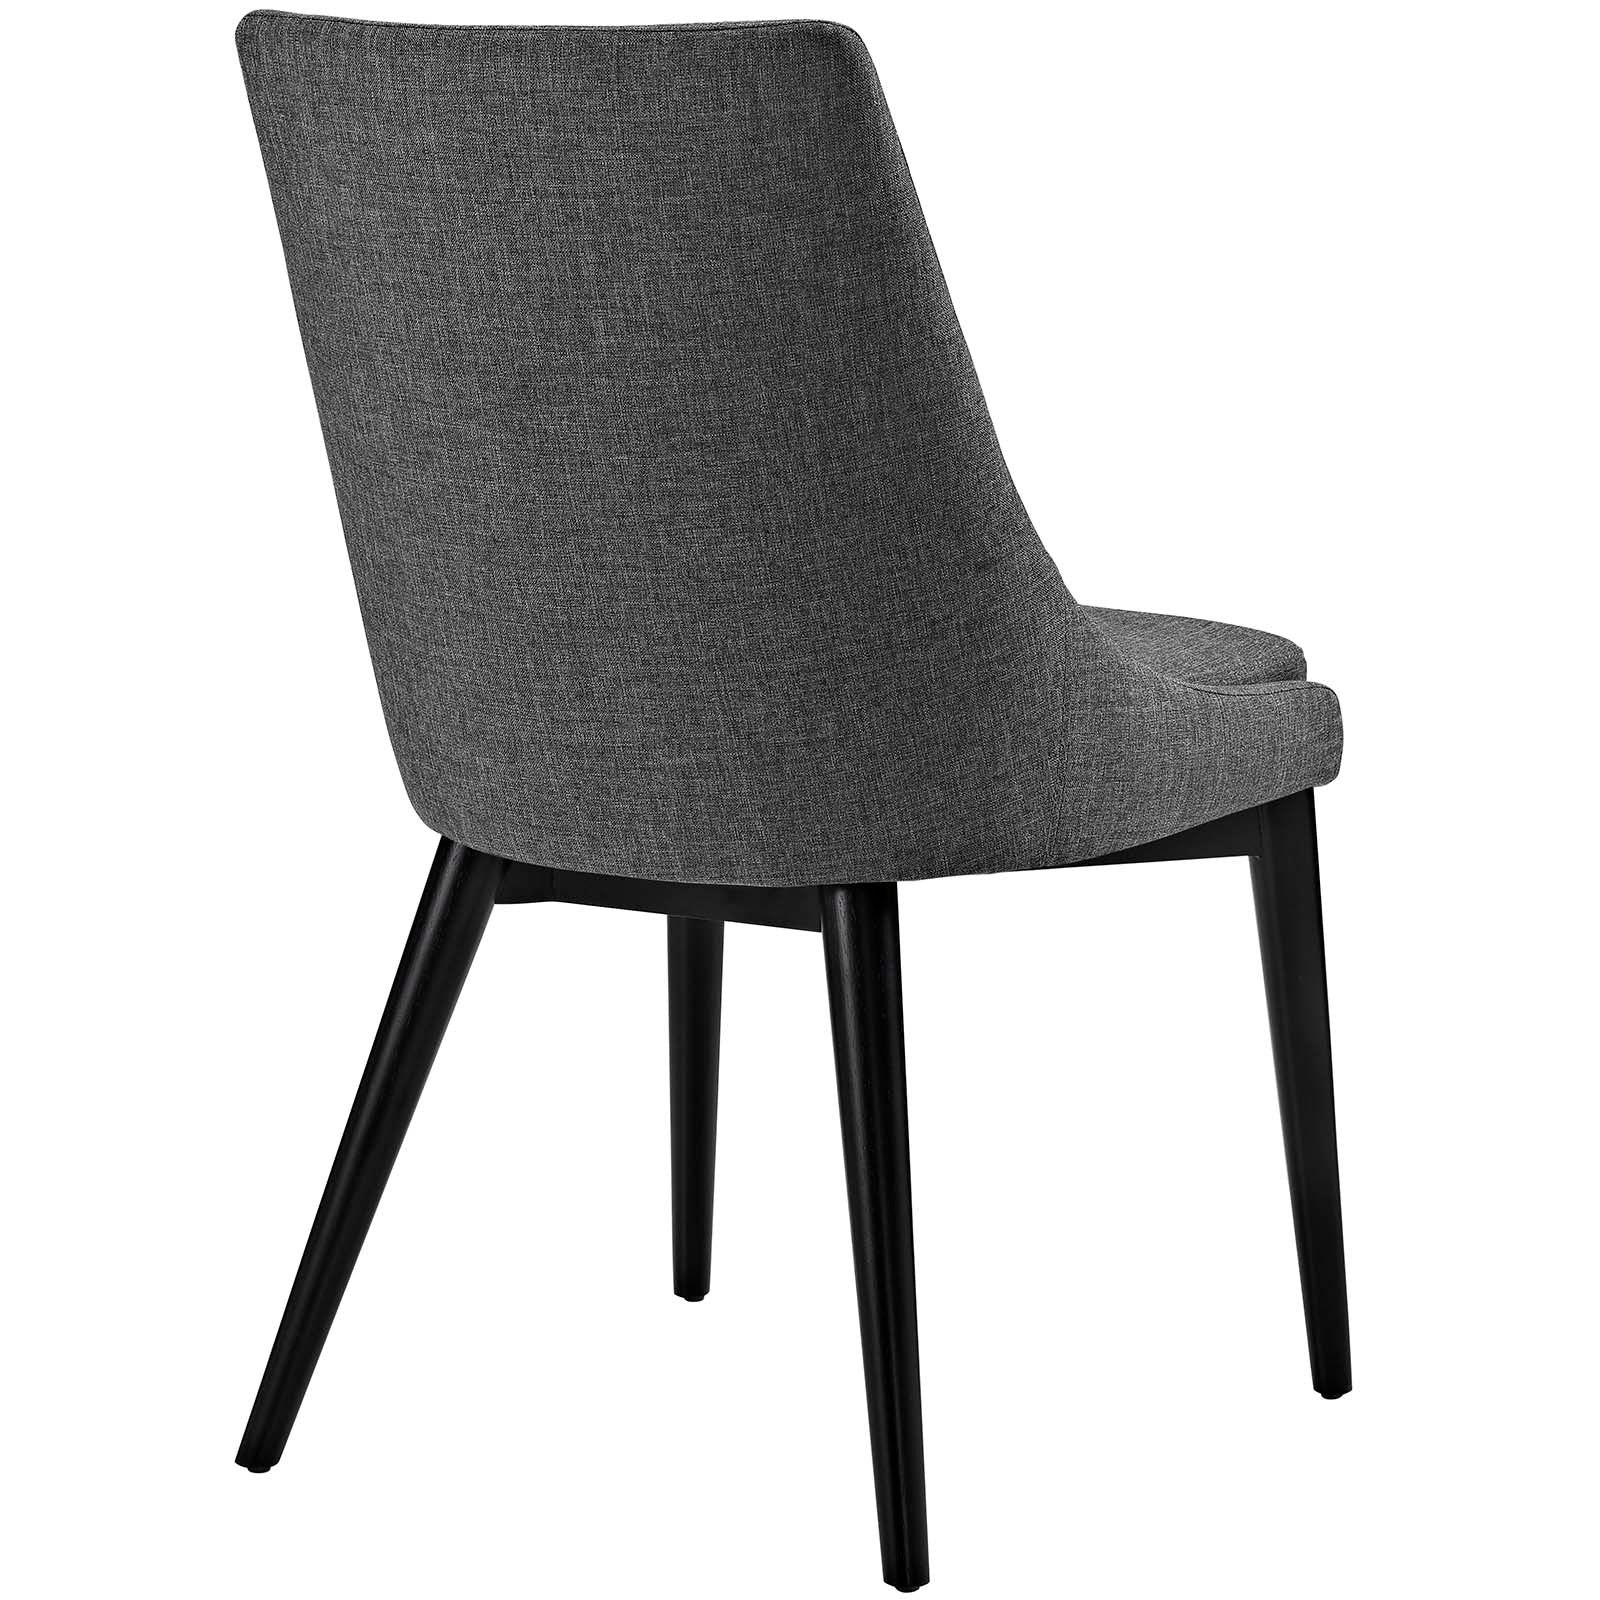 Modway Dining Chairs On Sale Eei 2227 Tea Viscount Fabric